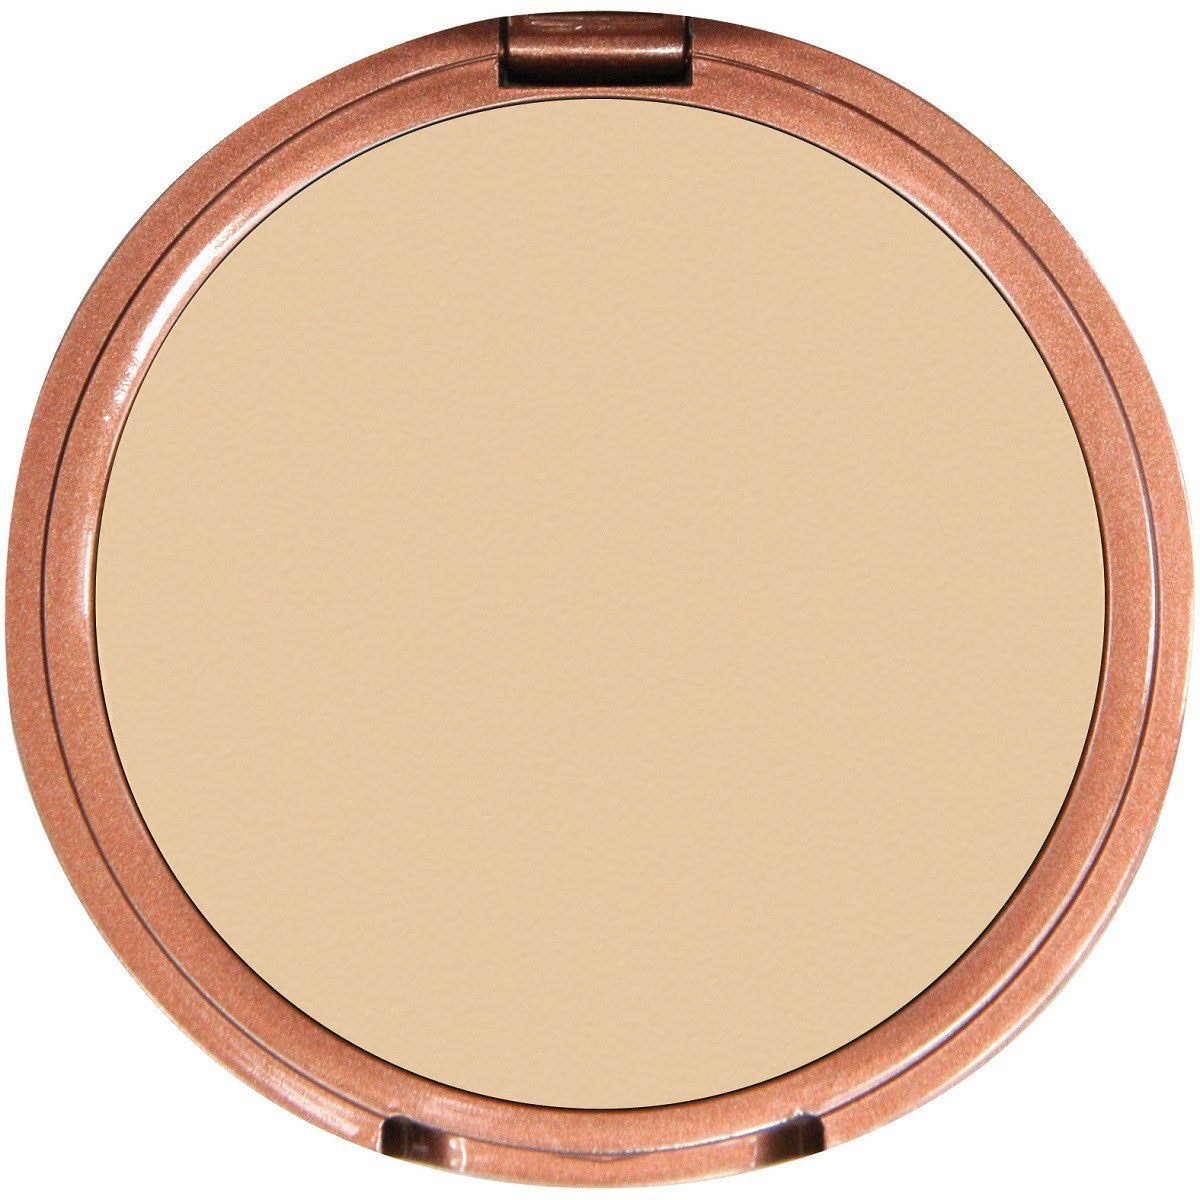 Beauty & Skin Care - Mineral Fusion - Pressed Powder Foundation -Olive 1 (for Olive Skin With Neutral Undertones), 9g